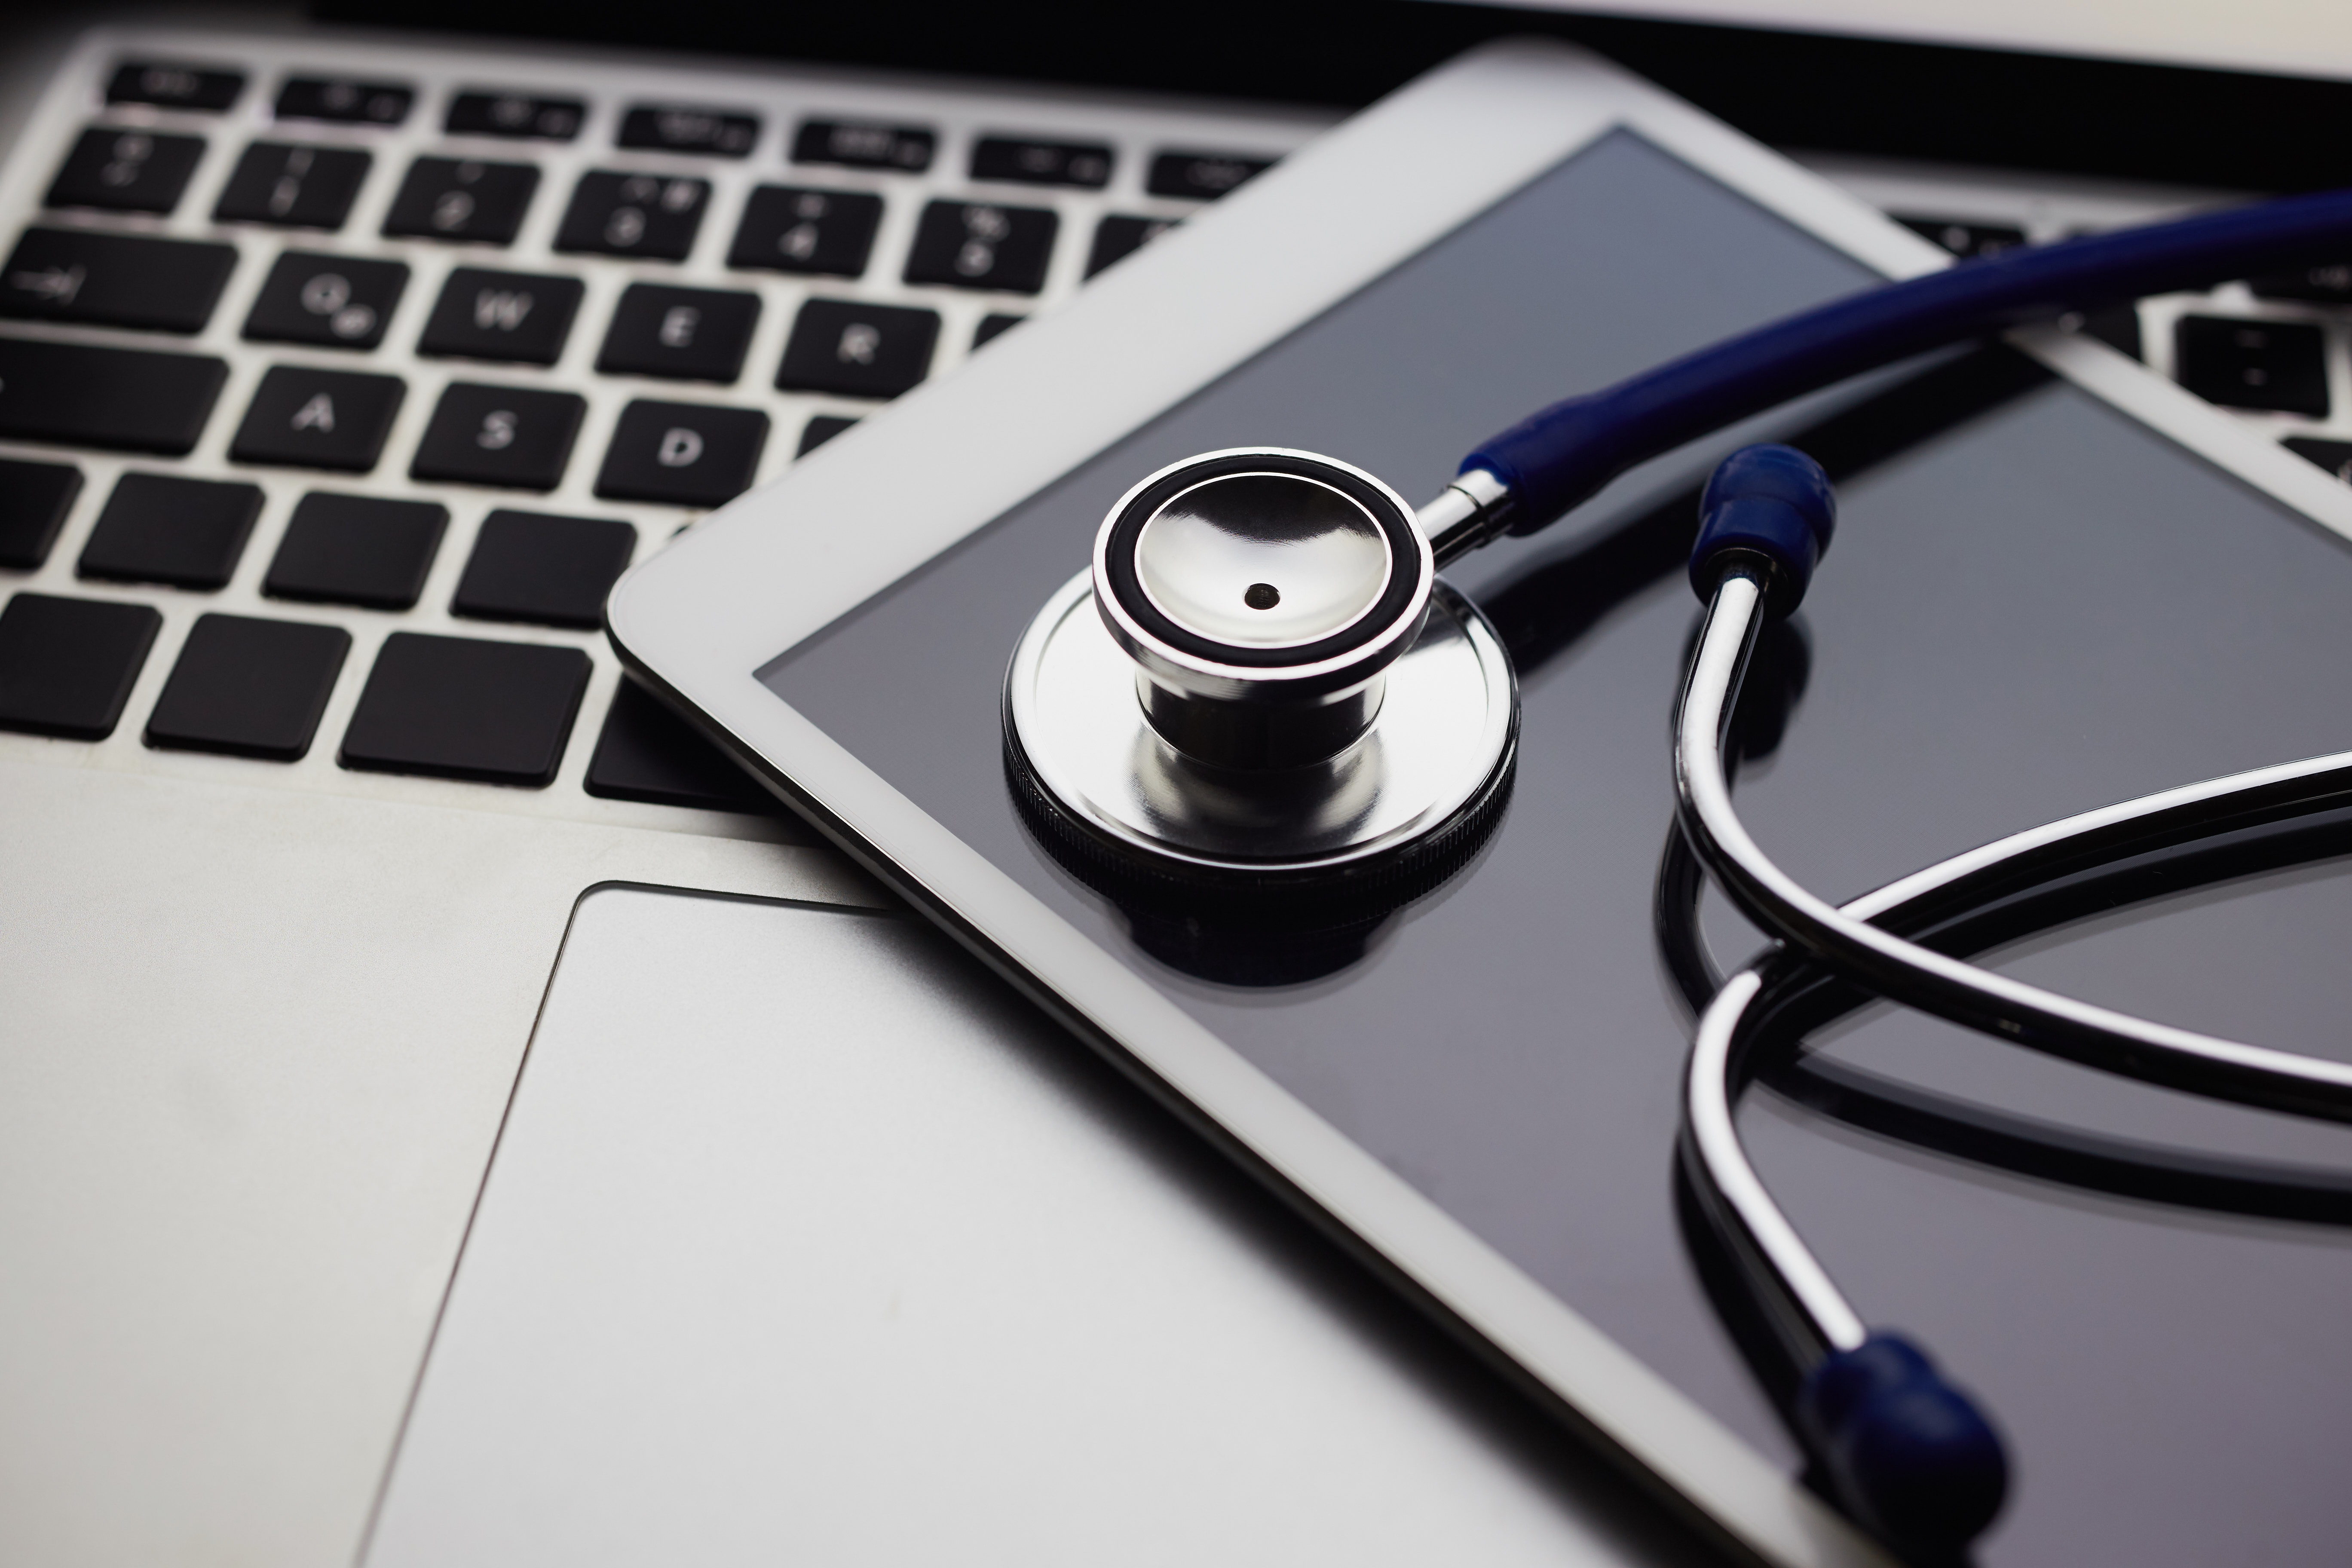 Stock image of keyboard, tablet, and stethoscope